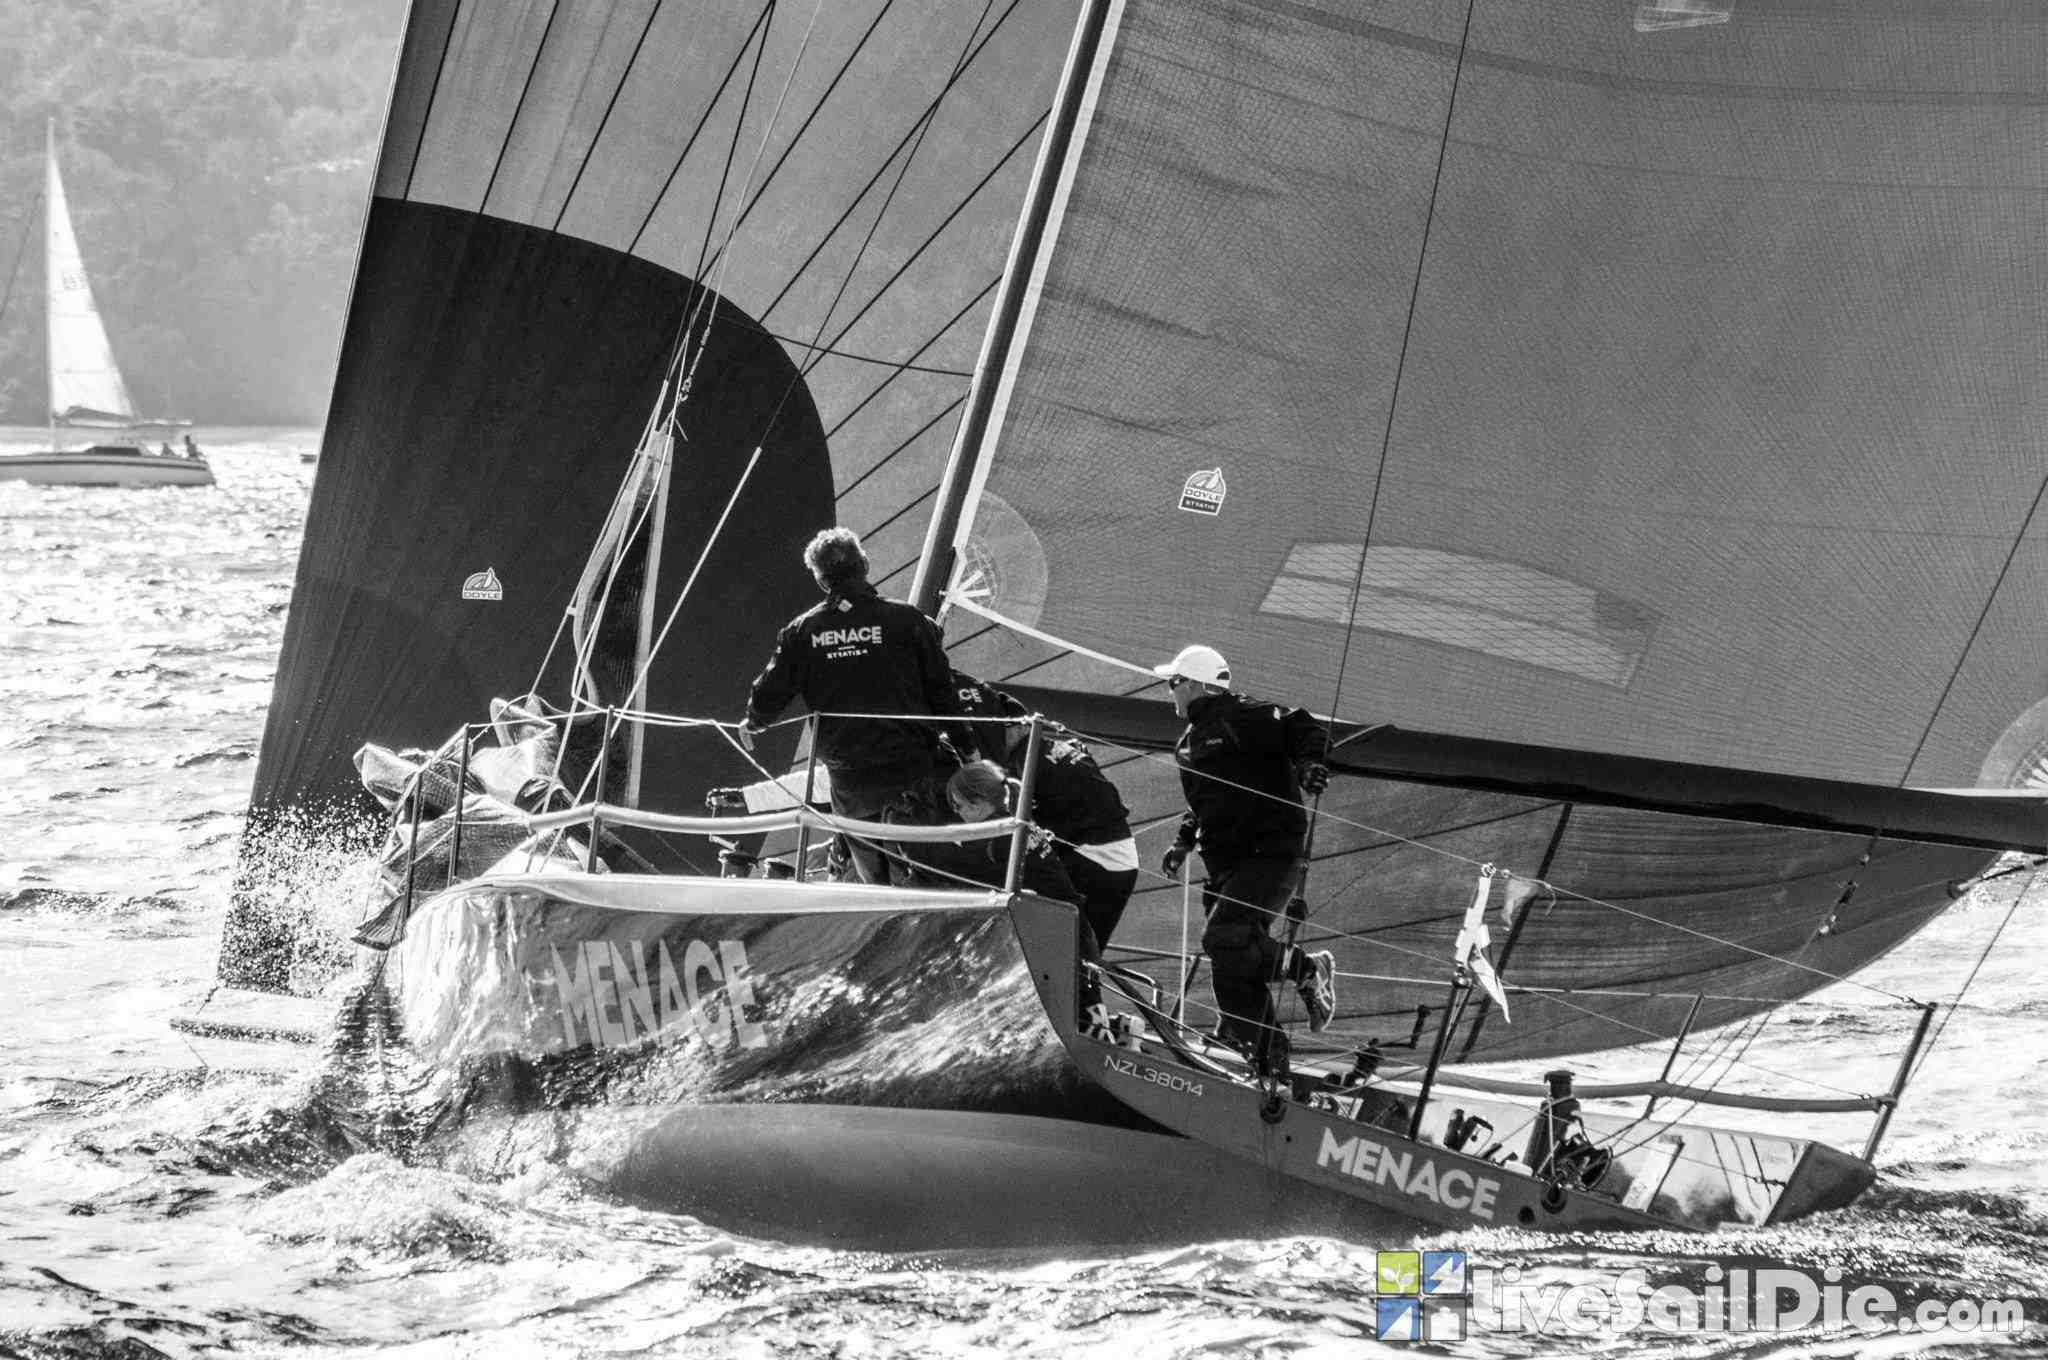 Mence finishes second at MC38 Pittwater Regatta